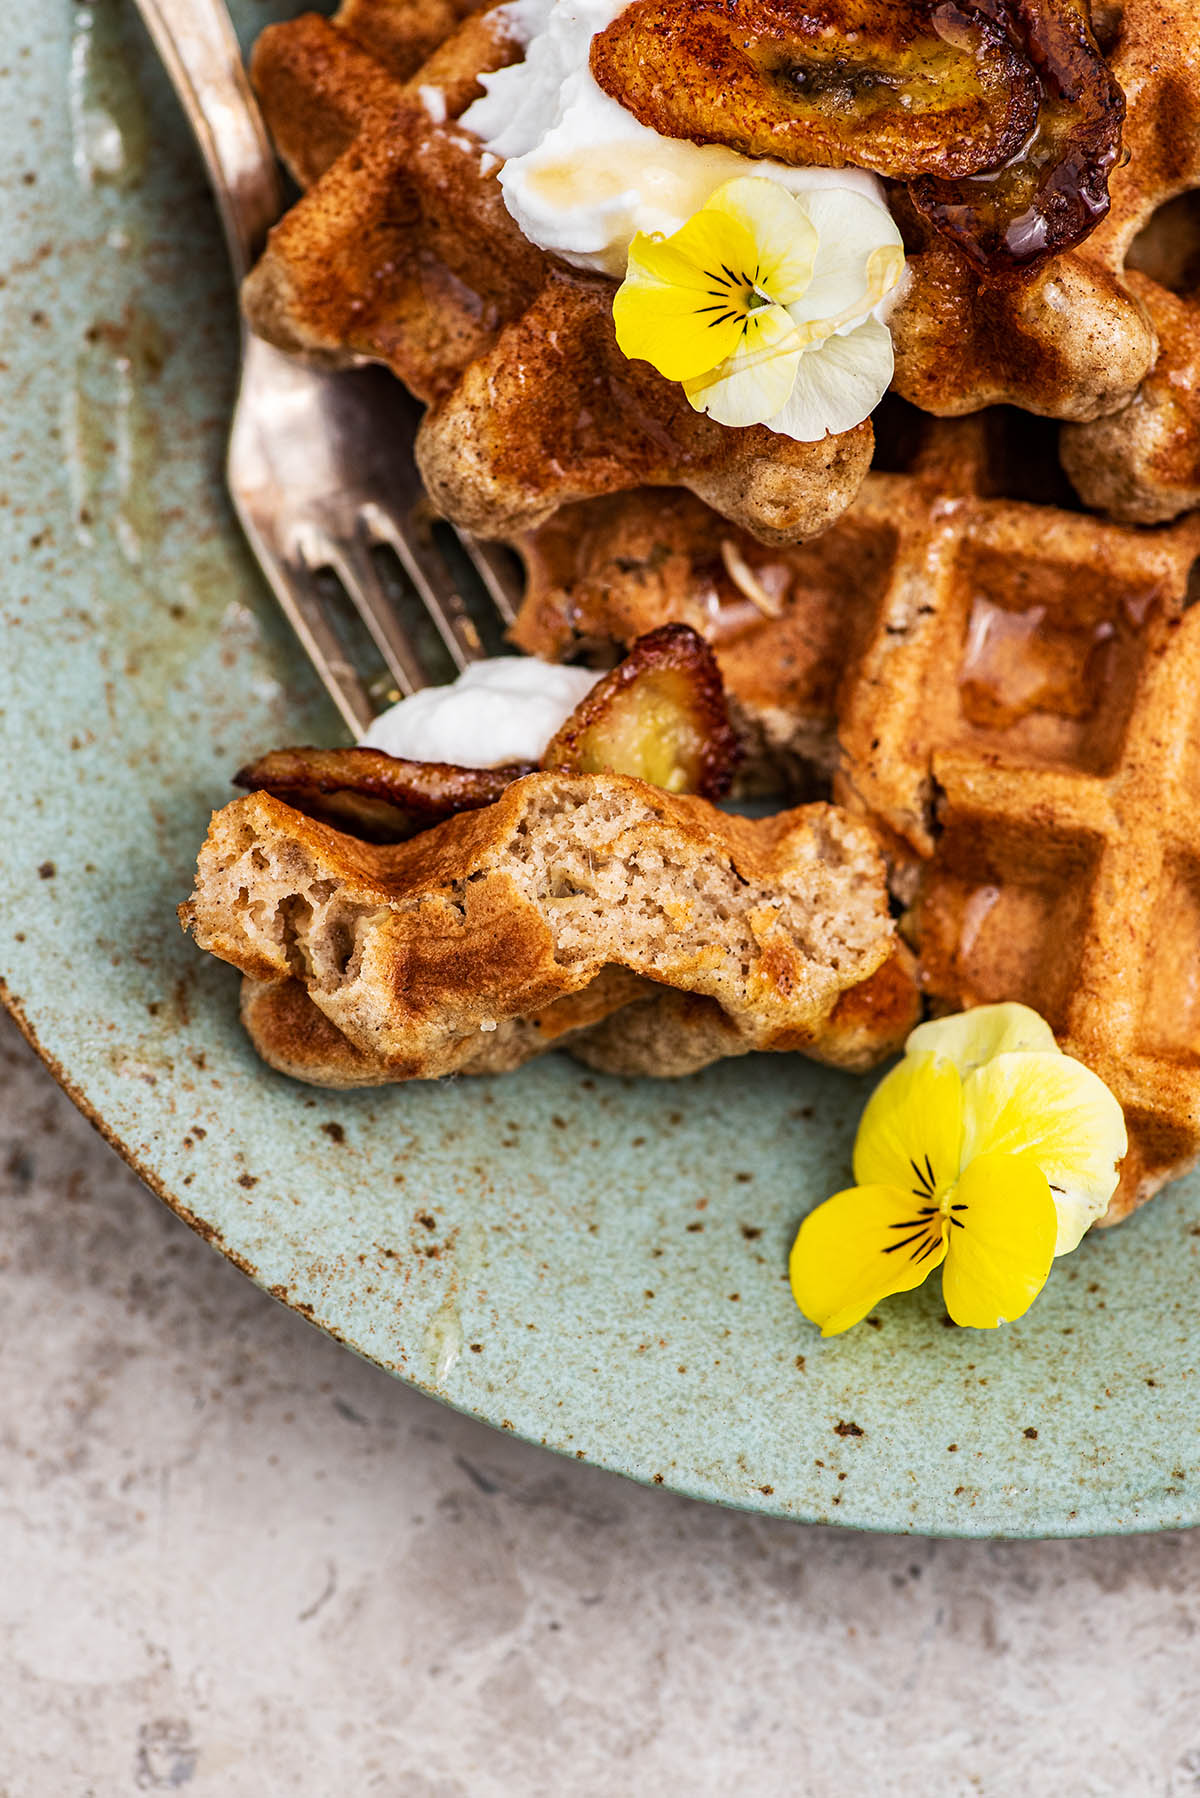 Close up of a piece of waffle on a fork to show interior texture.